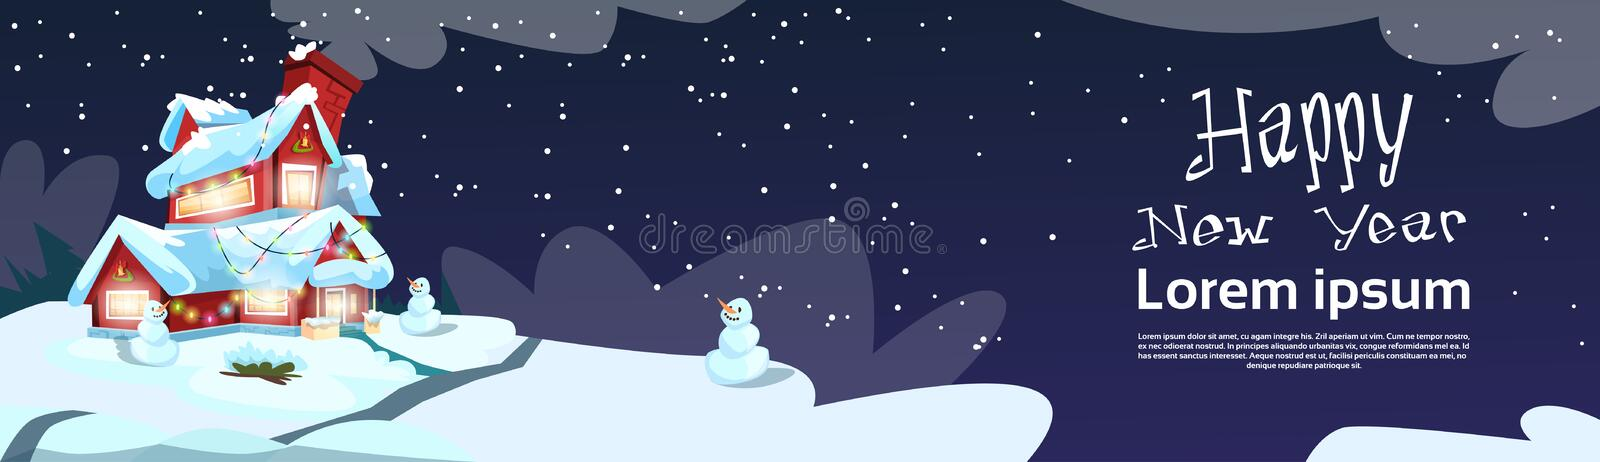 Christmas Eve Holiday House Winter Snow, Snowman Gift New Year Greeting Card stock illustration